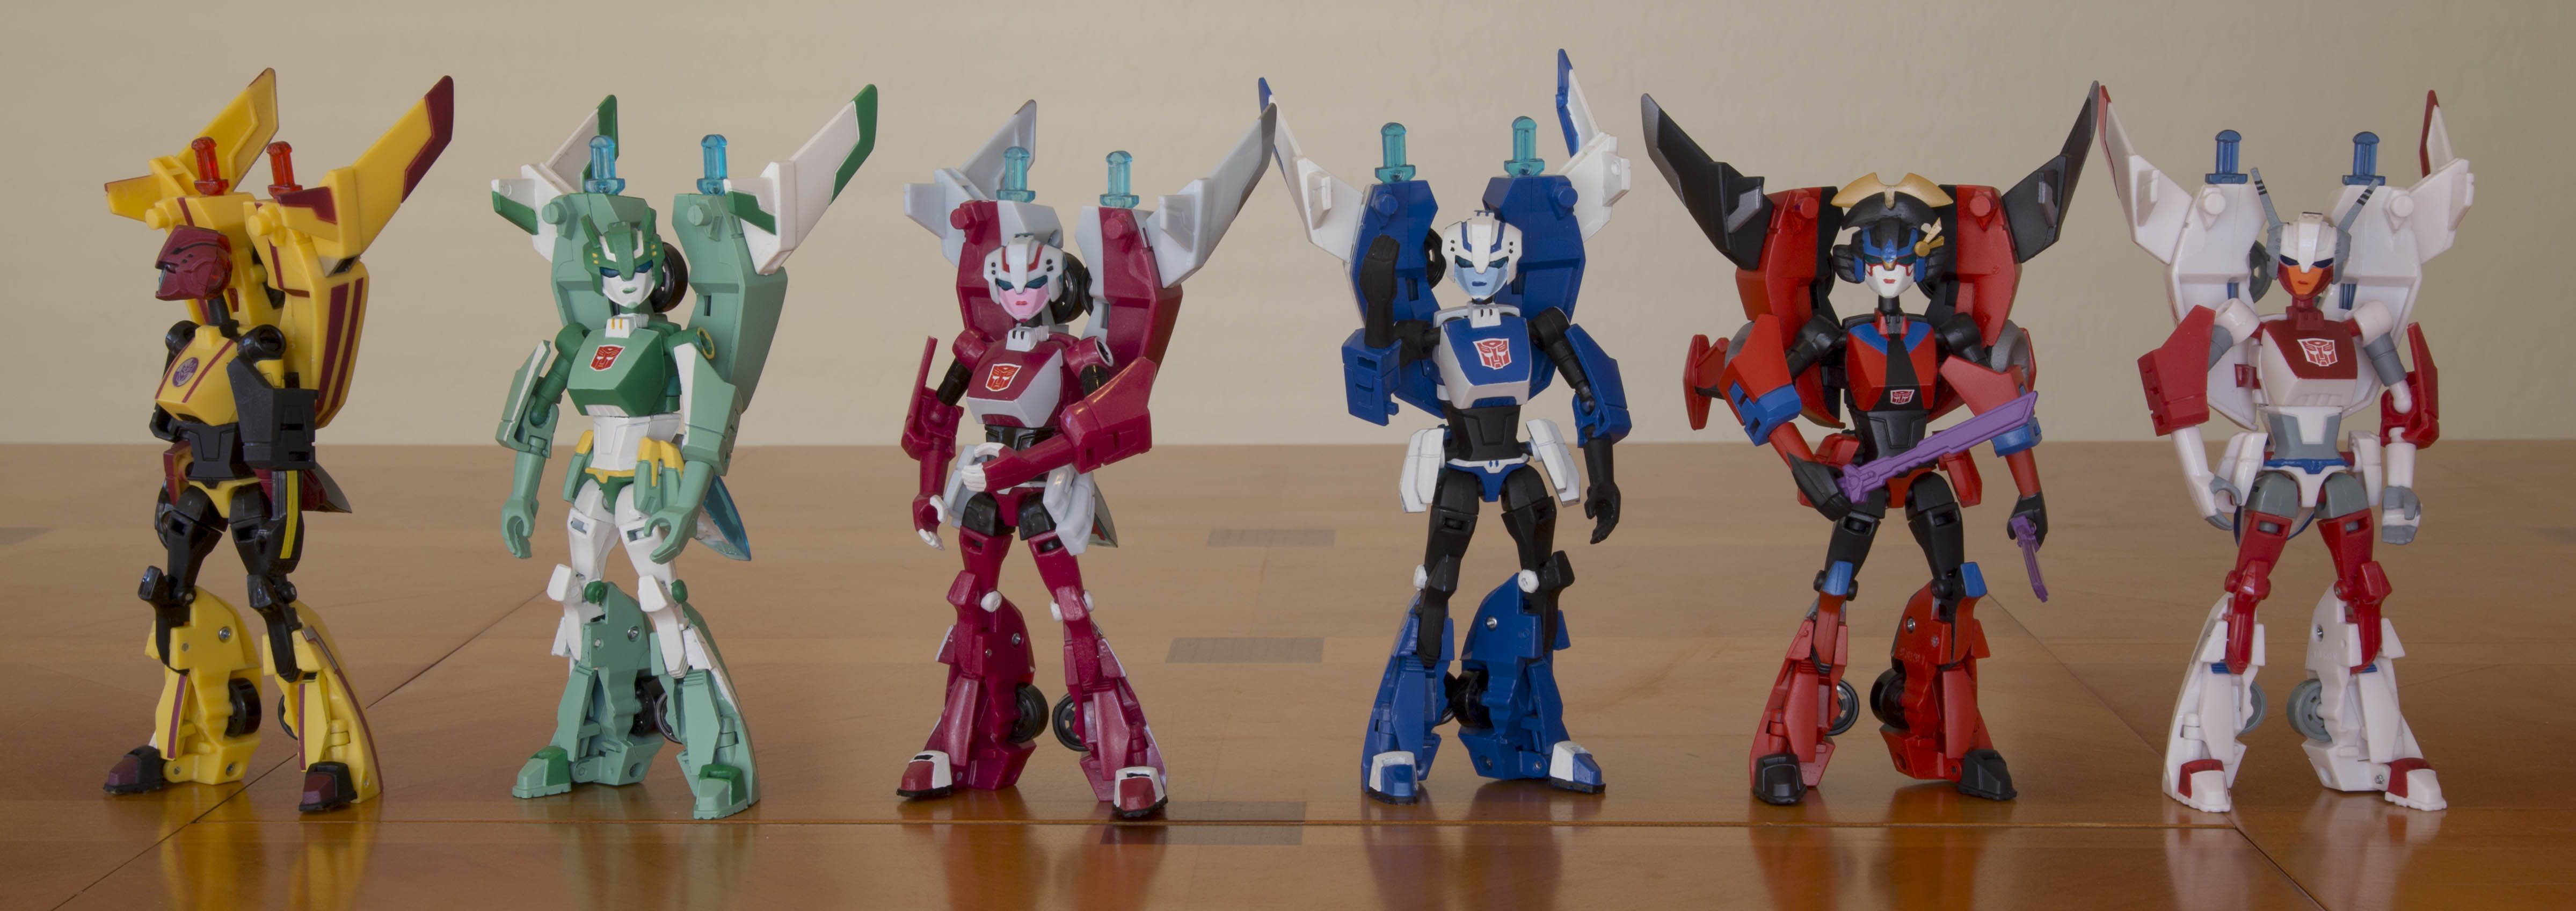 Cat Transformation Anime Transformers Animated Fembots